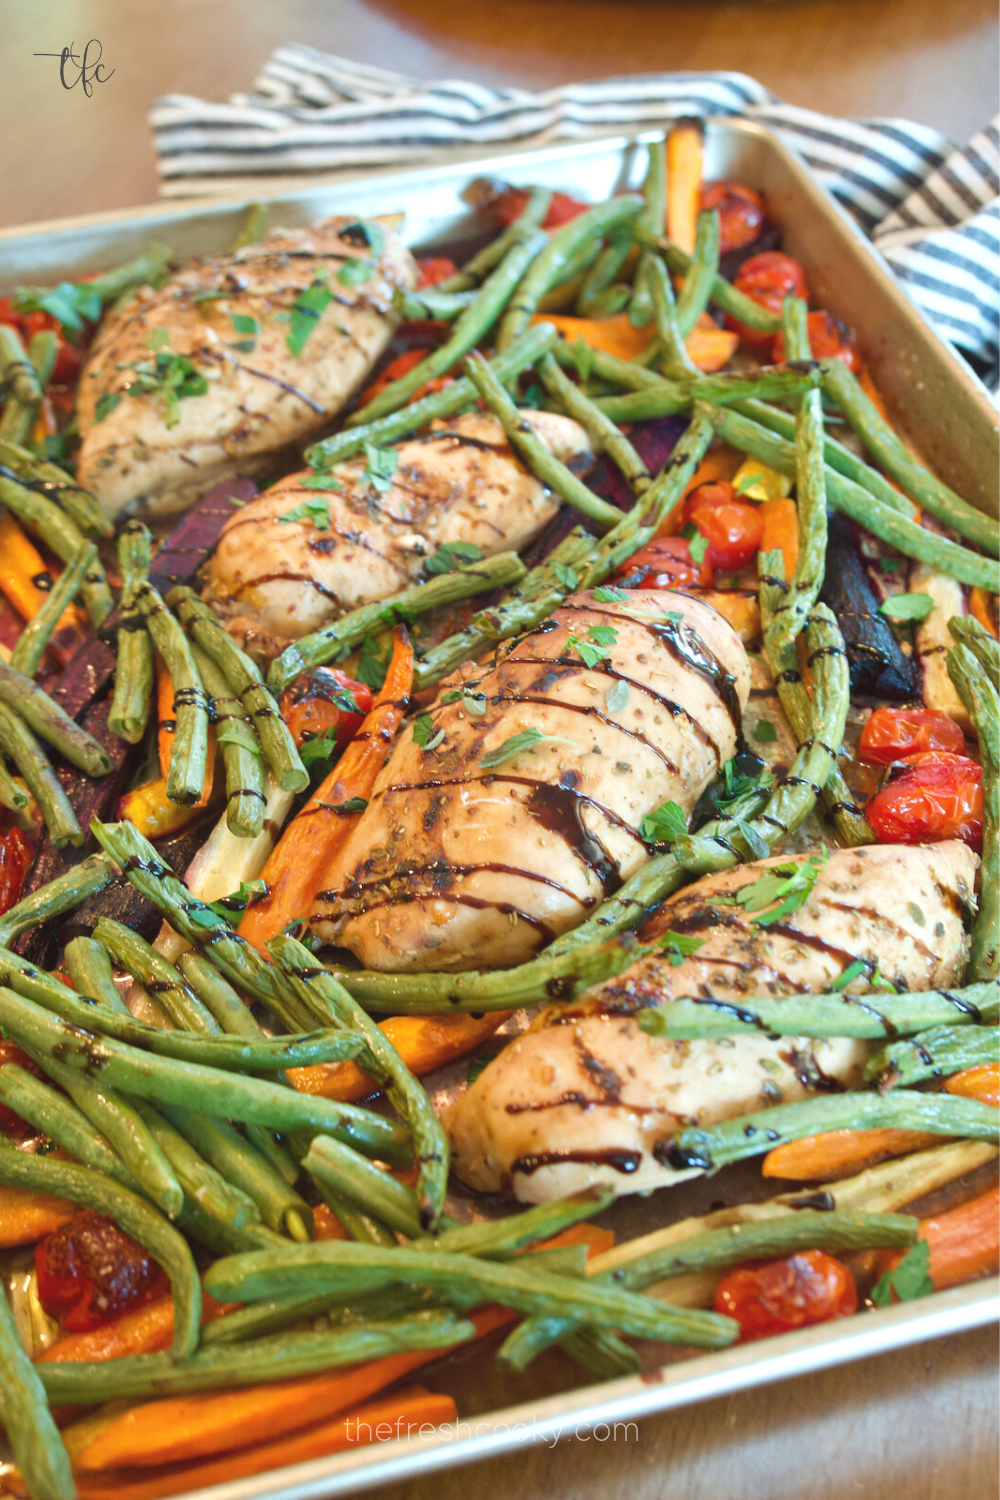 Easy Balsamic Maple Chicken Sheet pan dinner with carrots and green beans and a balsamic glaze drizzle.